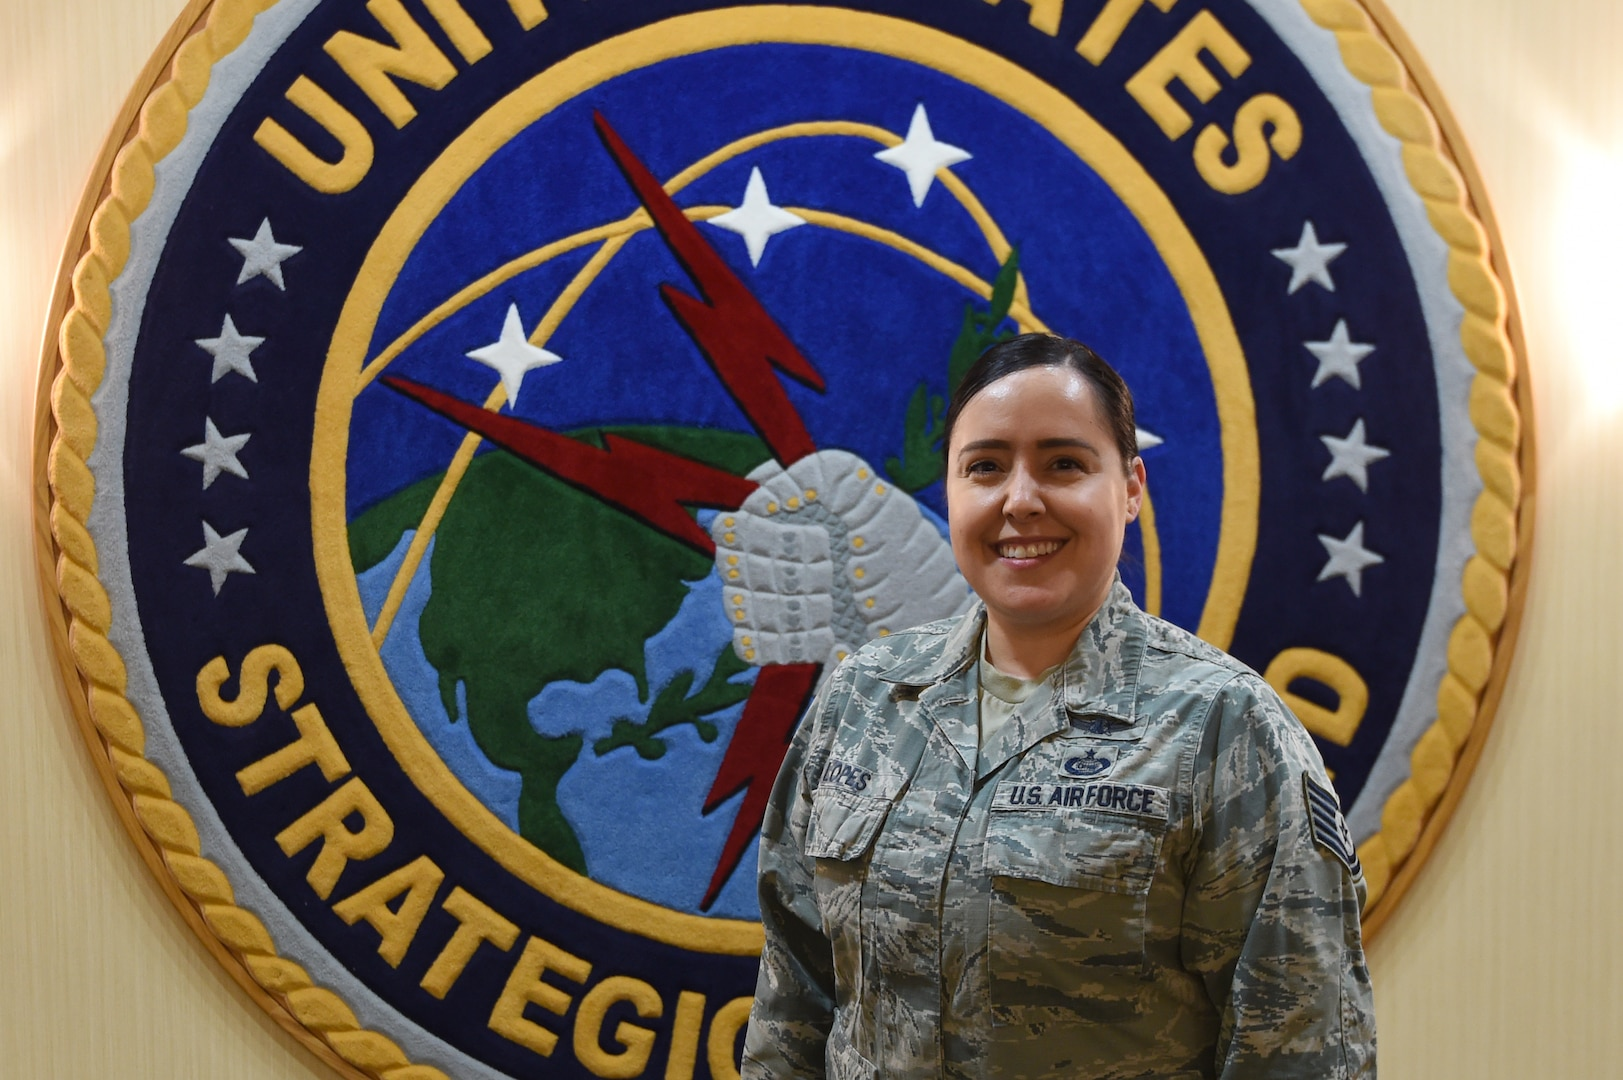 U.S. Air Force Tech. Sgt. Jennifer Lopes, Enlisted Corps Spotlight for March